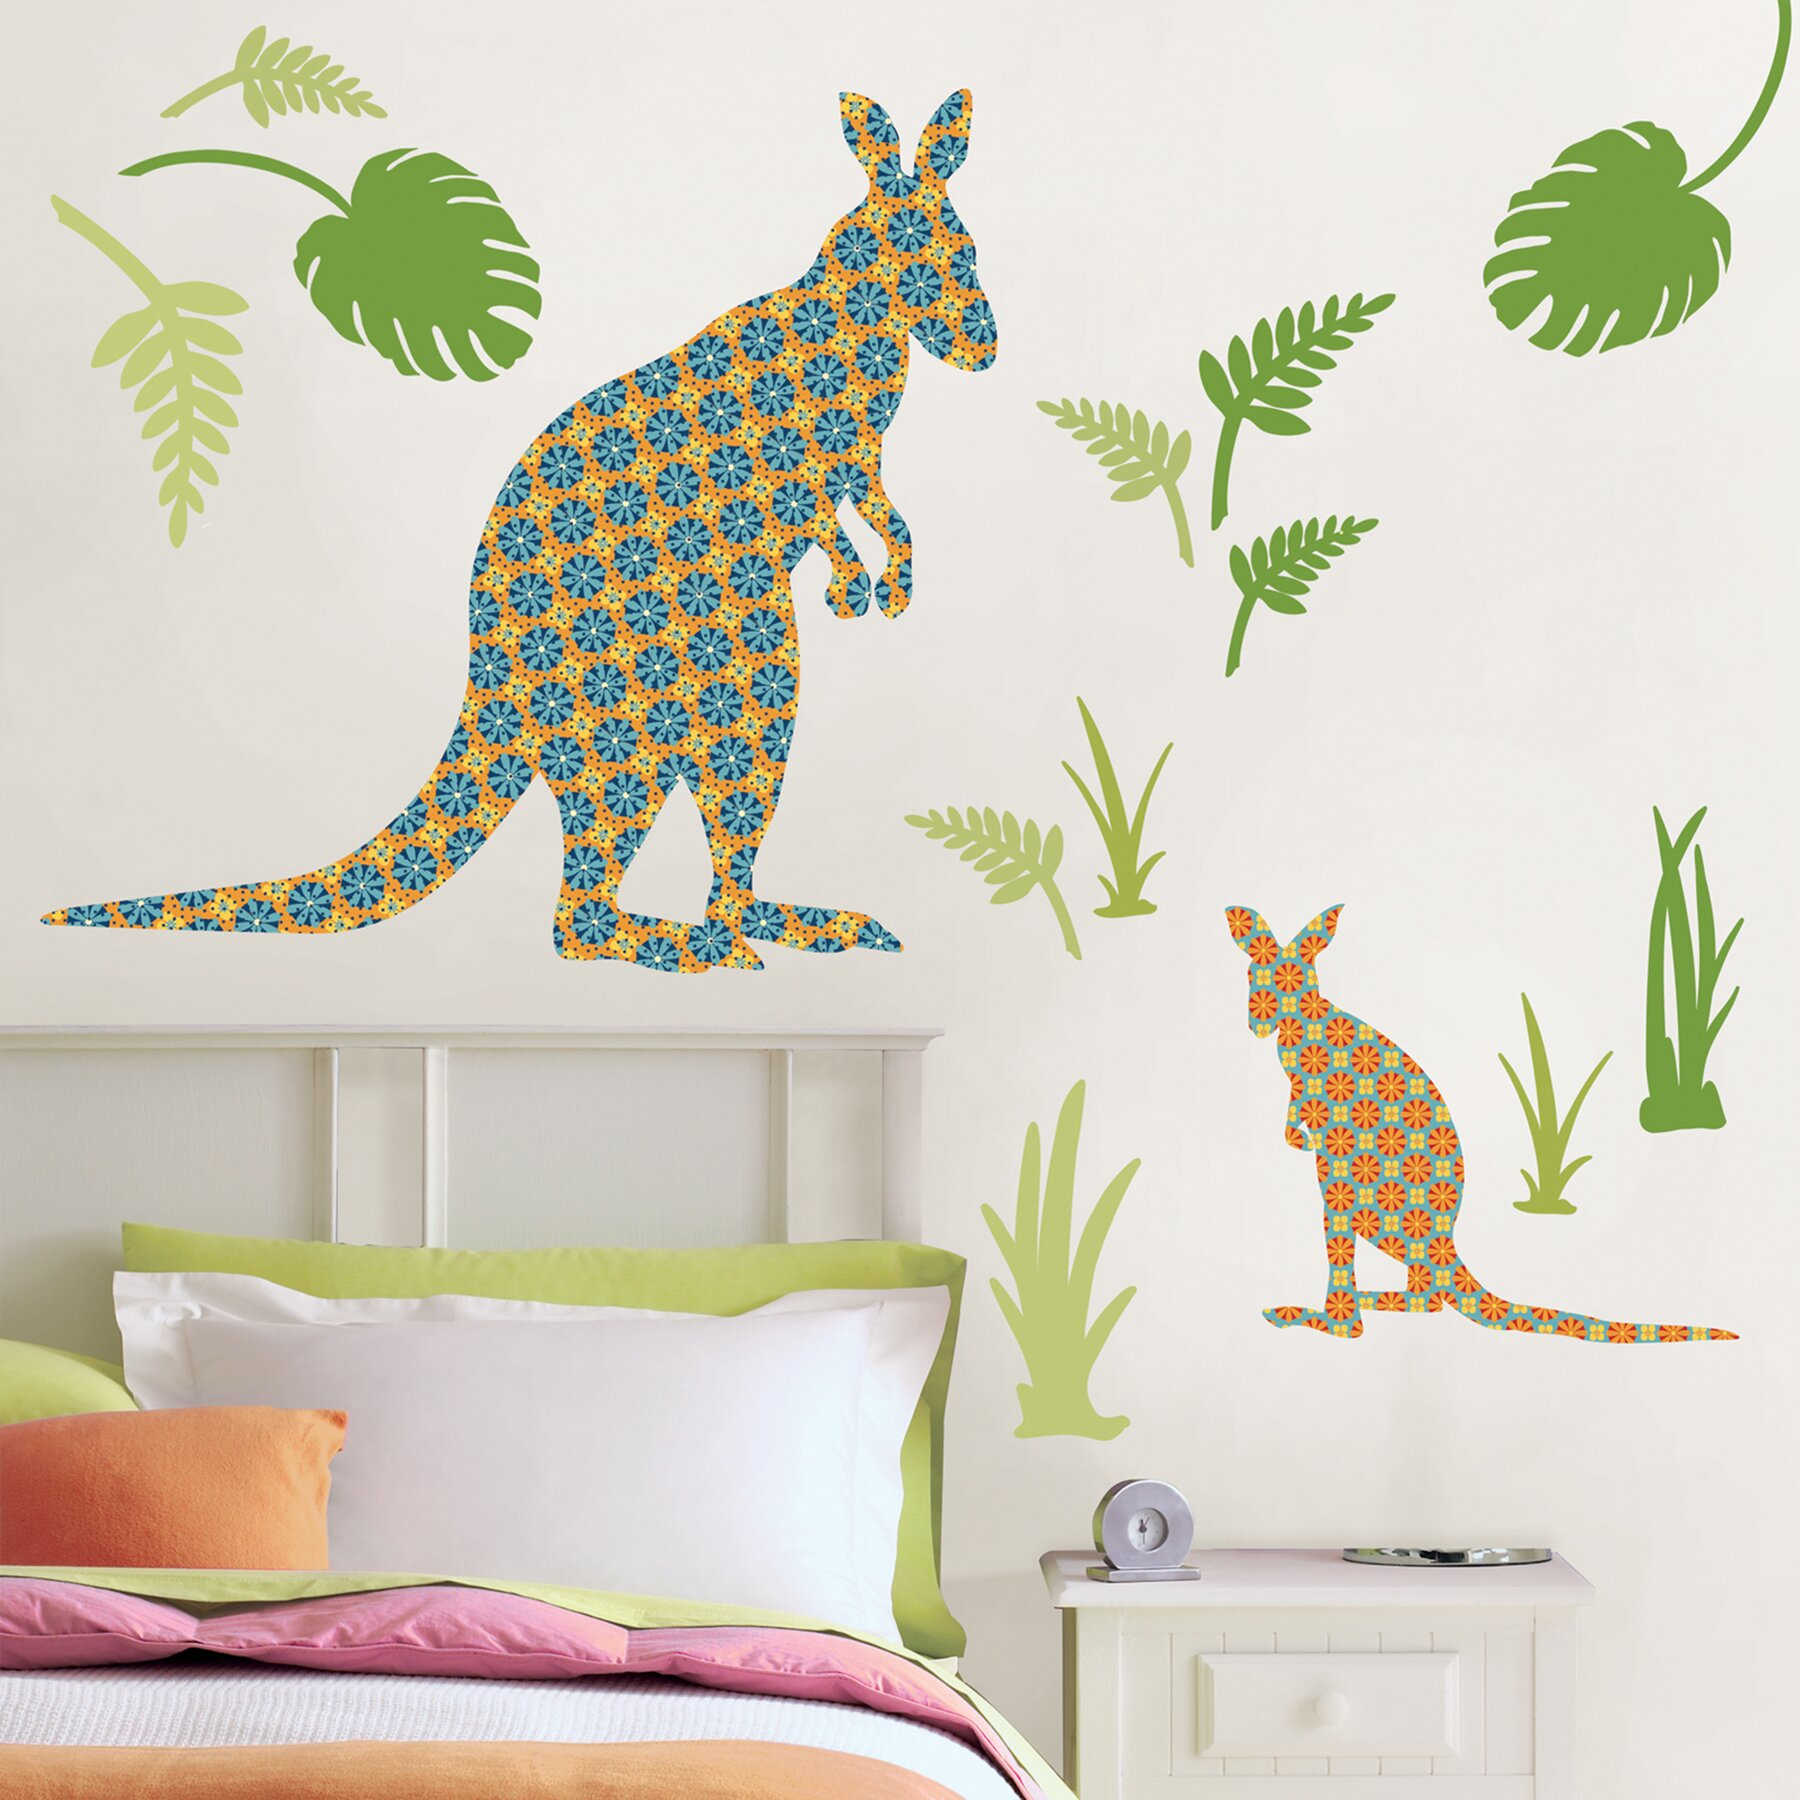 Joey the kangaroo wall decal wayfair for Kangaroo outdoor furniture covers